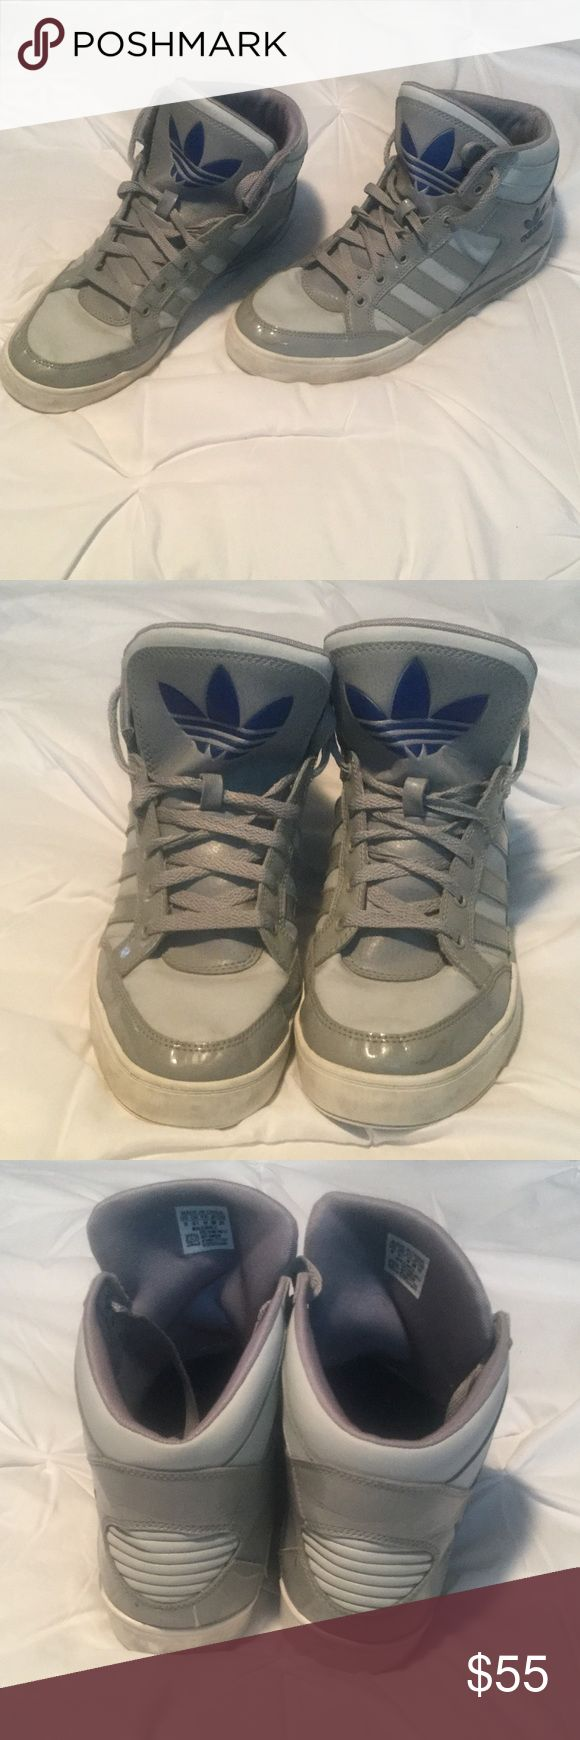 Adidas Basketball Shoes Size 10 Adidas  Men's Basketball Shoes Size 10 no box please see pictures to tell use. Adidas Shoes Sneakers